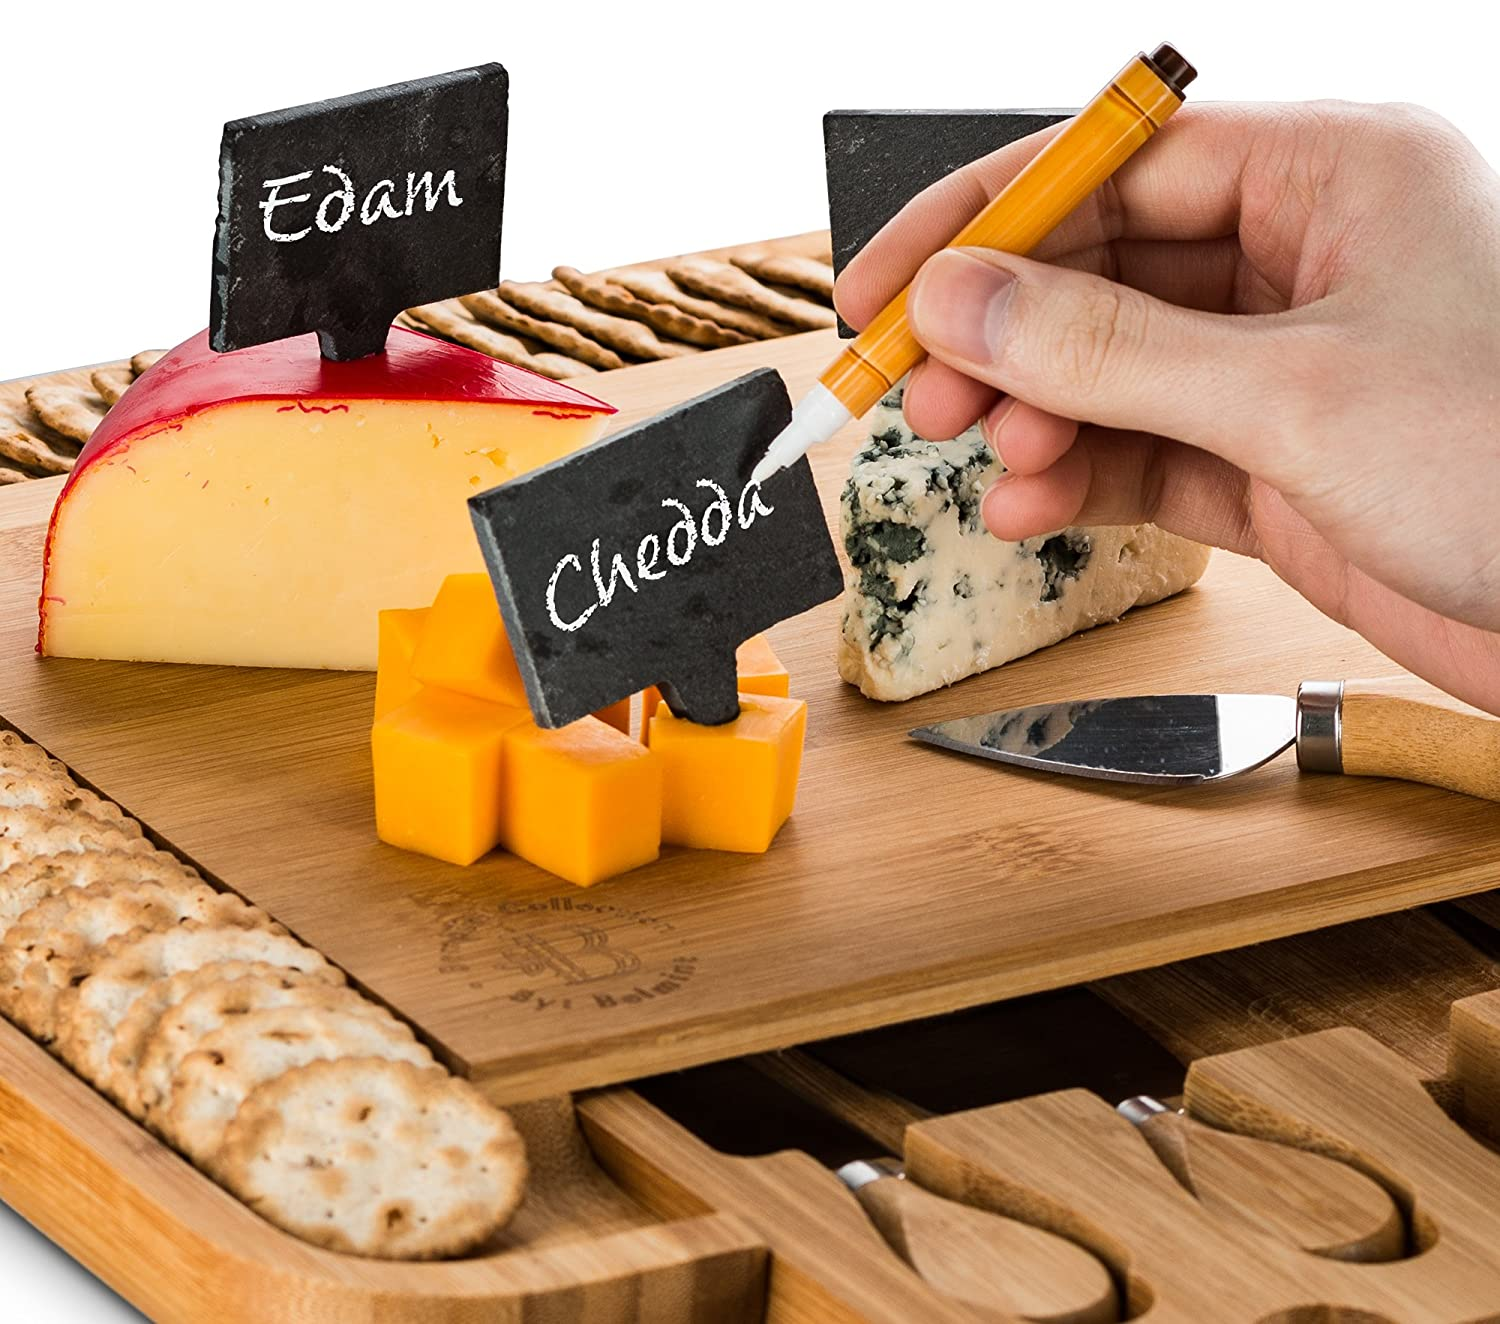 Crackers Wooden Charcuterie Meat 3 Labels Includes 4 Stainless Steel Serving Utensils Bamboo Cheese Board with Cutlery Set Great Gift Idea Bambüsi BAM-CBWM 2 Chalk Markers Cheese Tray with Wine